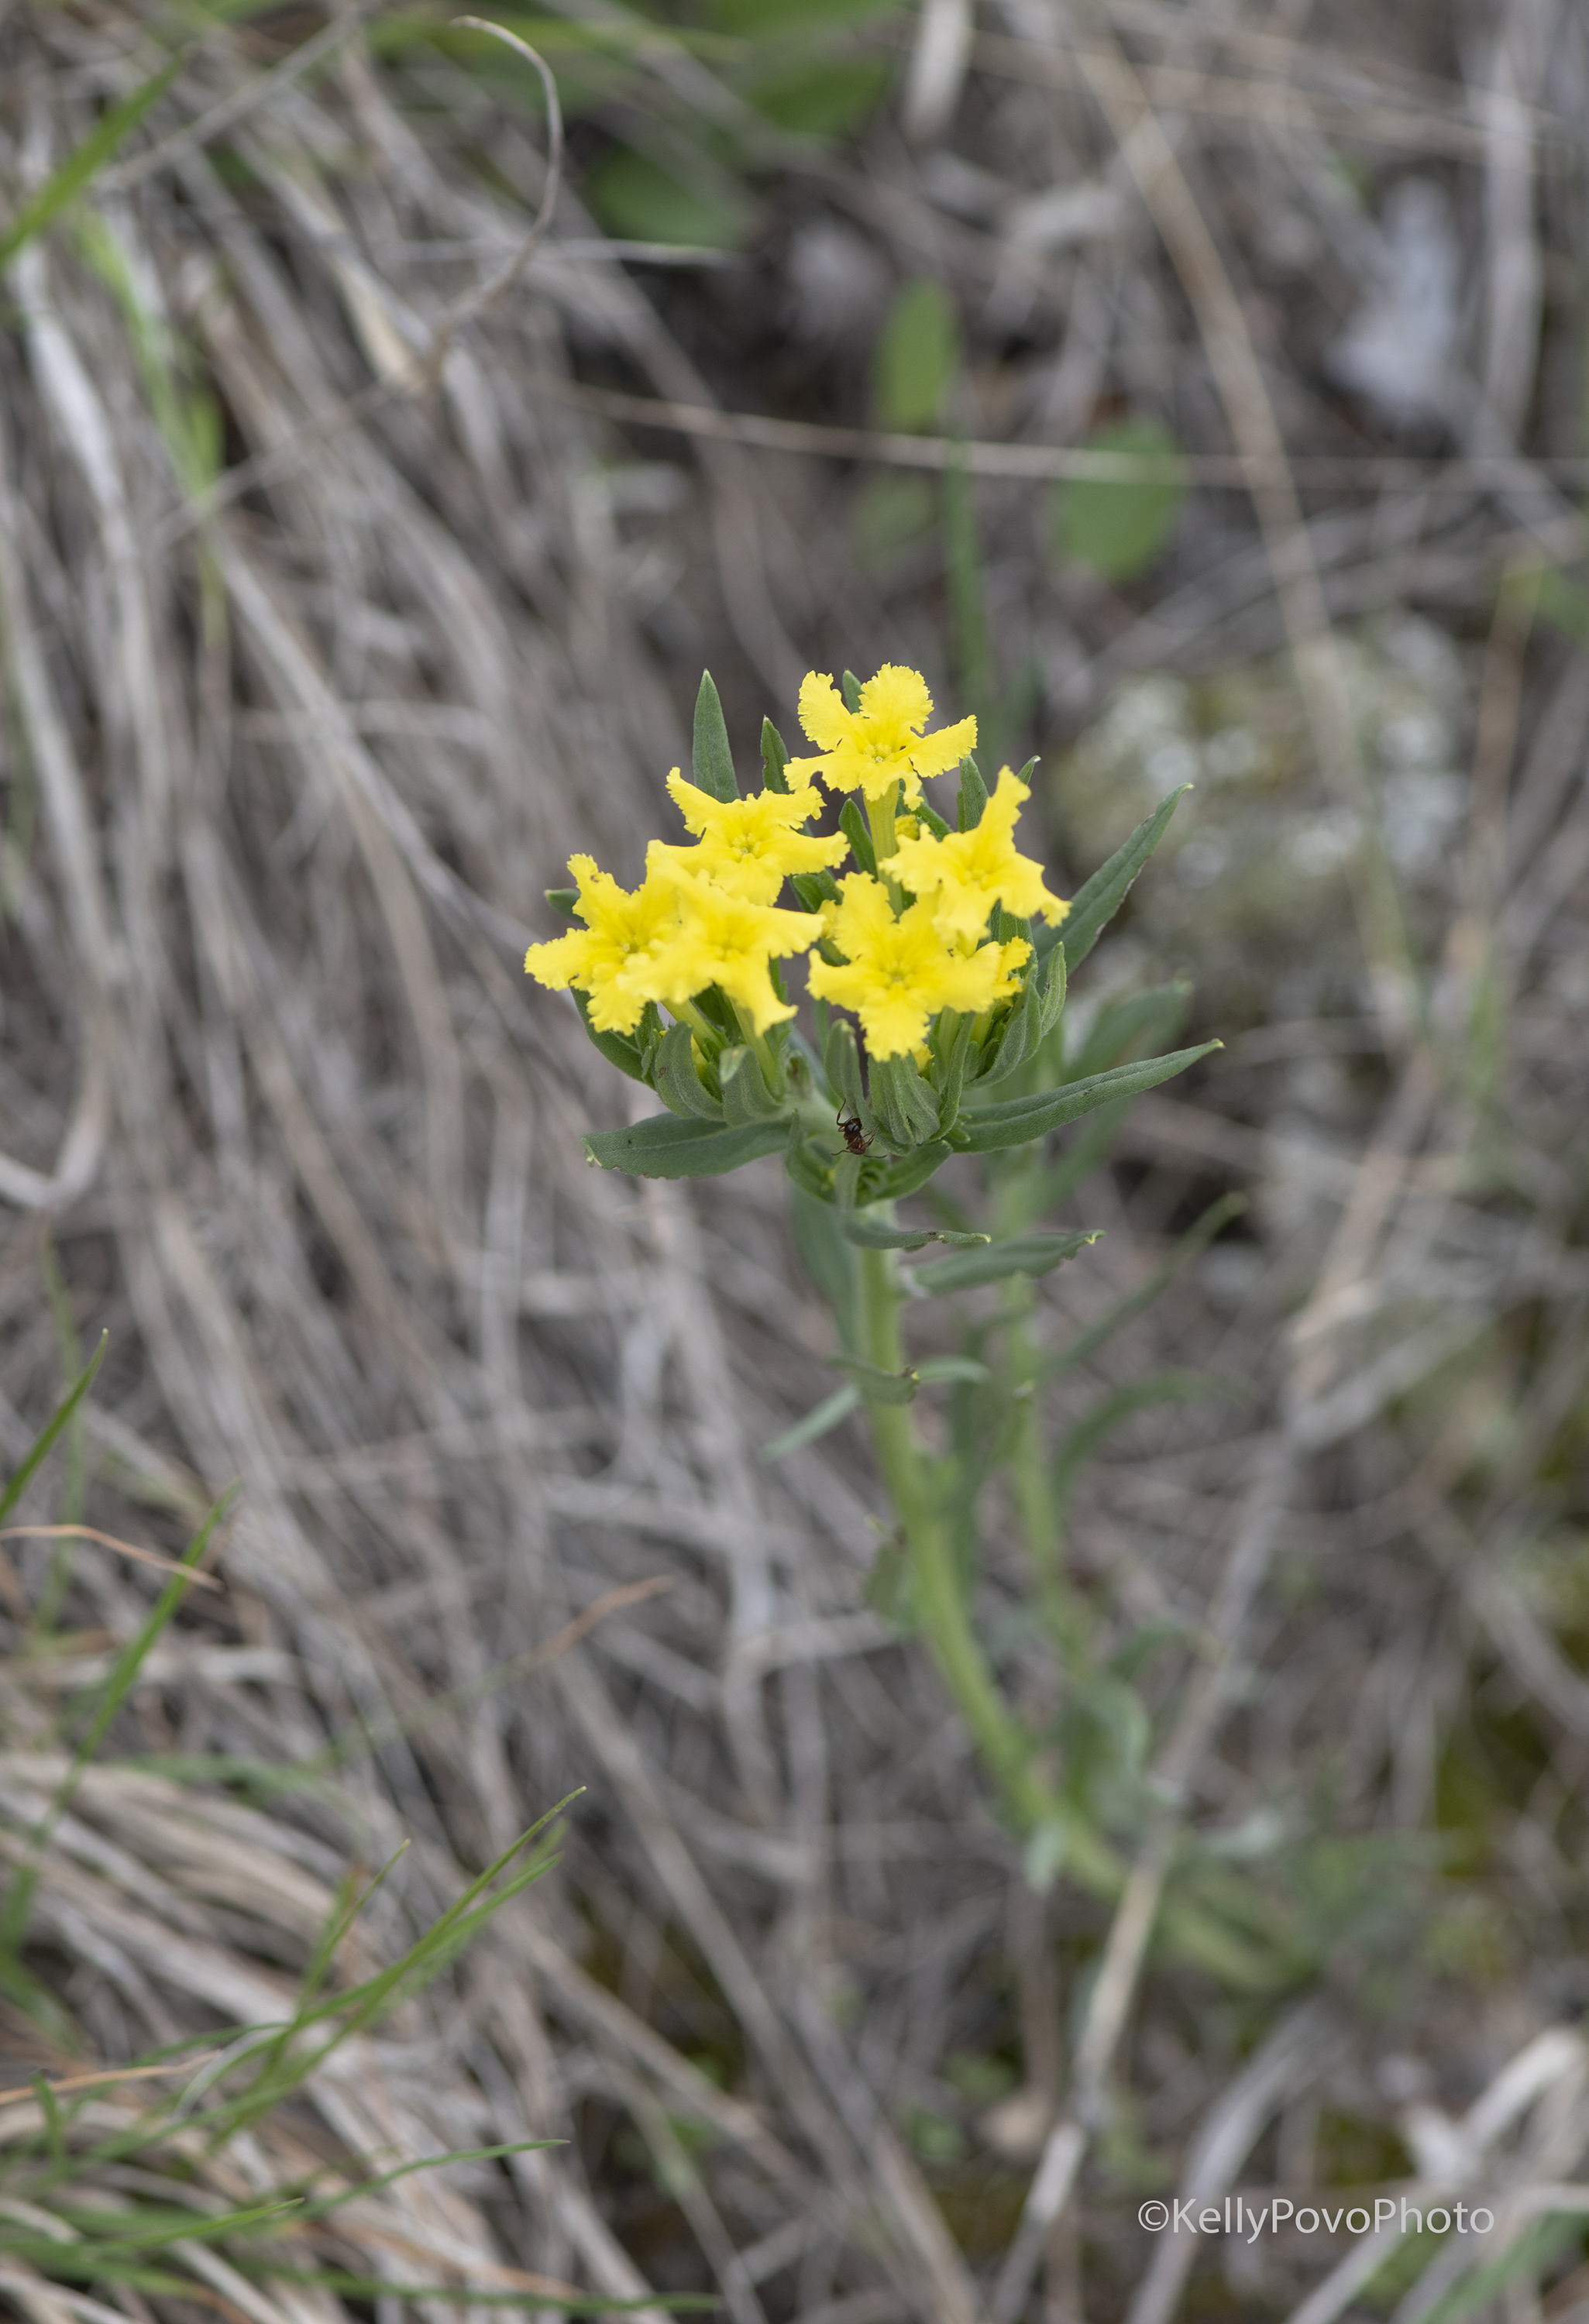 Fringed puccoon